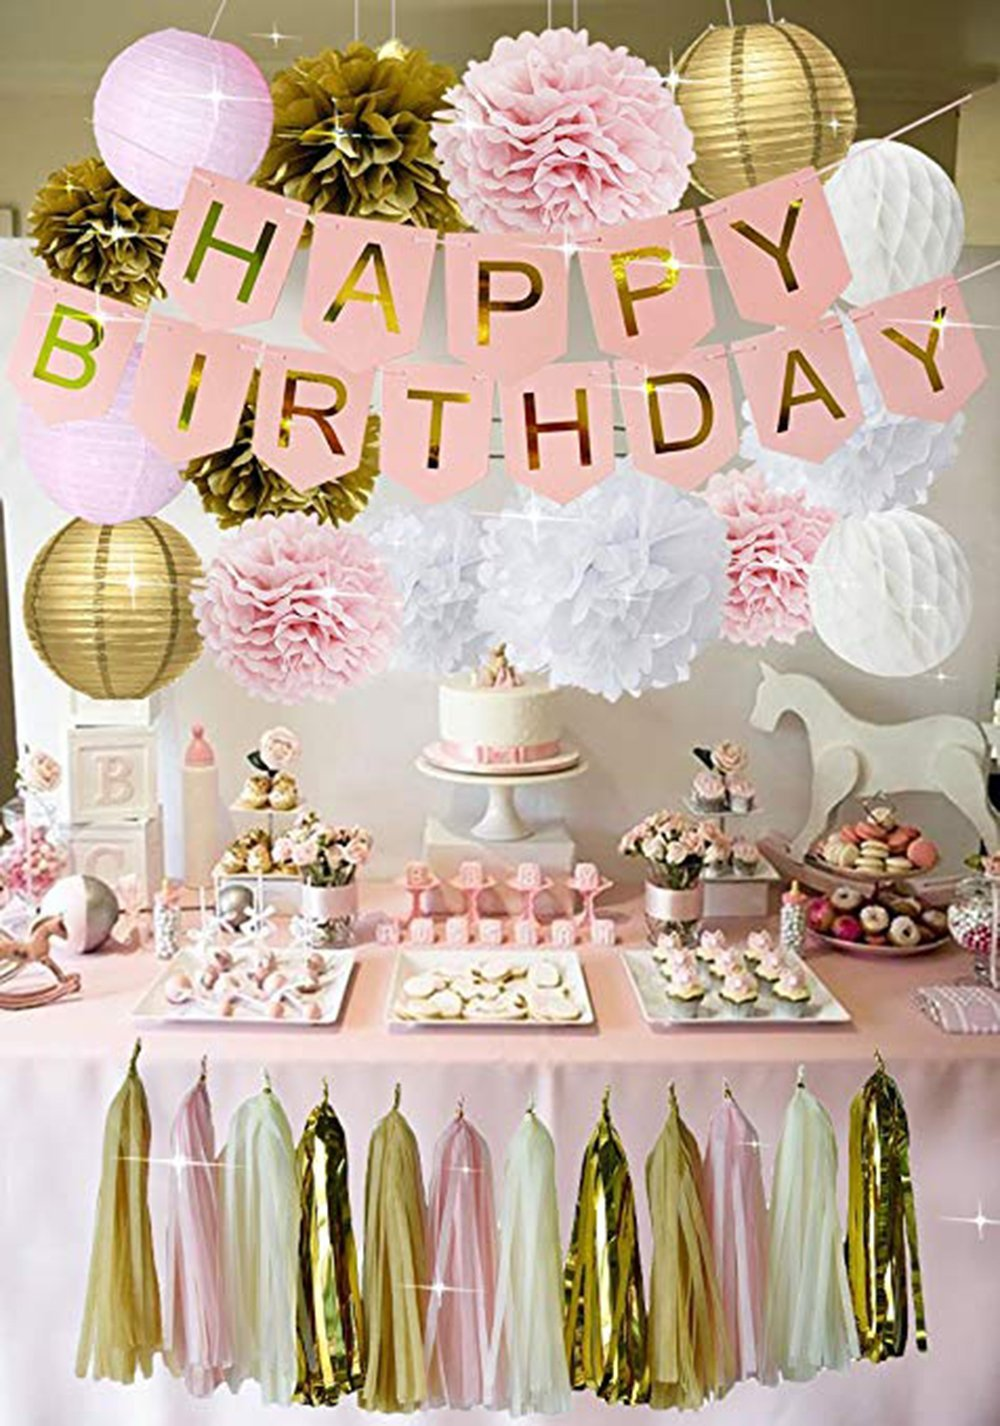 PINK GOLD BIRTHDAY Decorations – Pink Birthday Banner, Pink Girls Birthday Party Kit Decor, Pink Gold Poms & Lantern Set, Pink Tassel